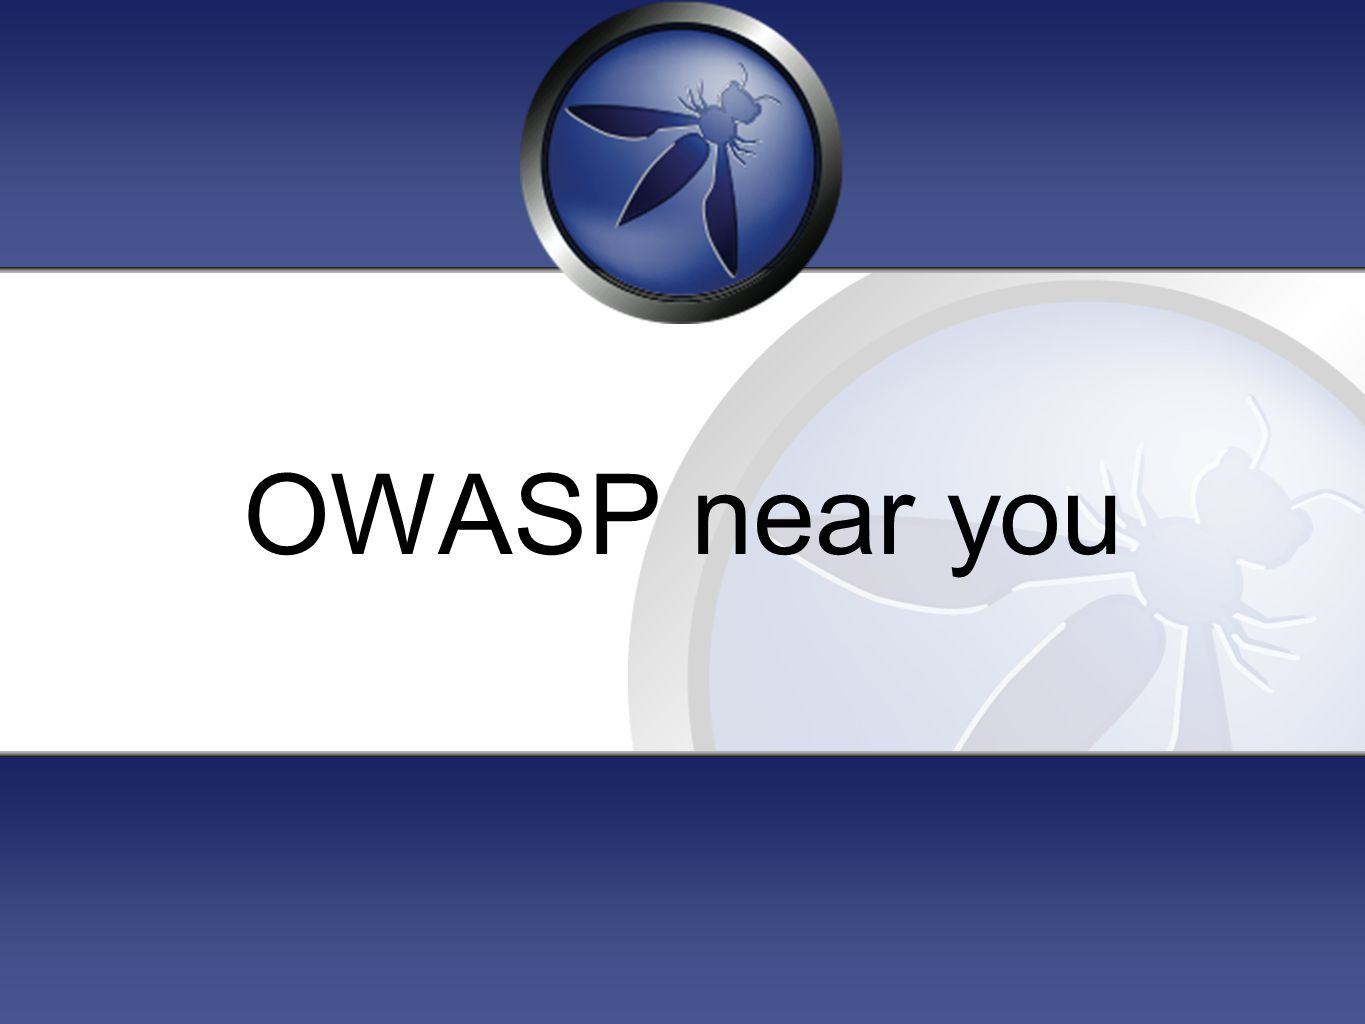 OWASP near you